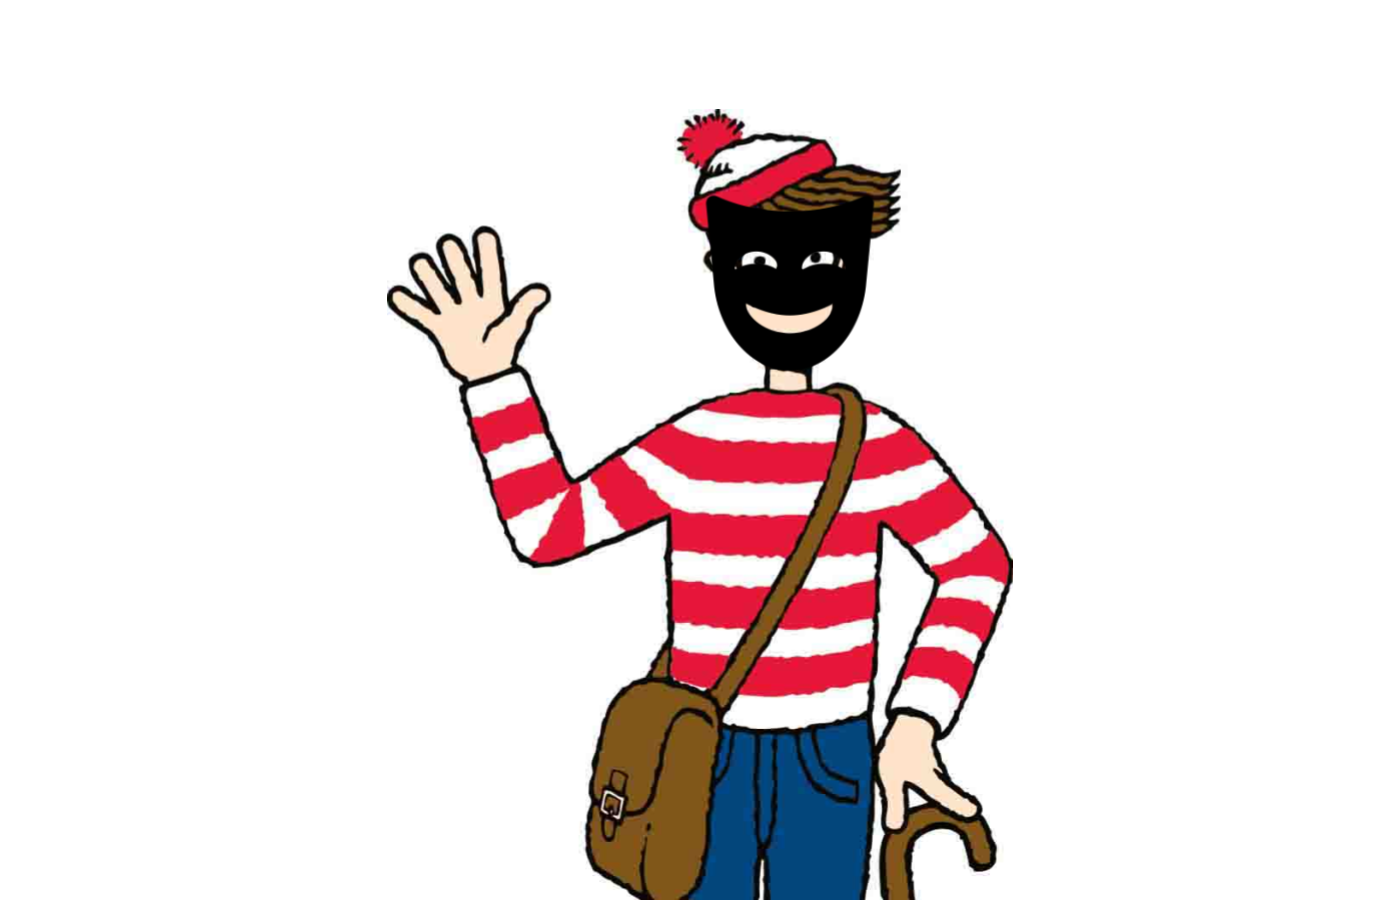 Data masking is like masking the face of Wally in a Where is Wally album. You will still find him in so many other ways.